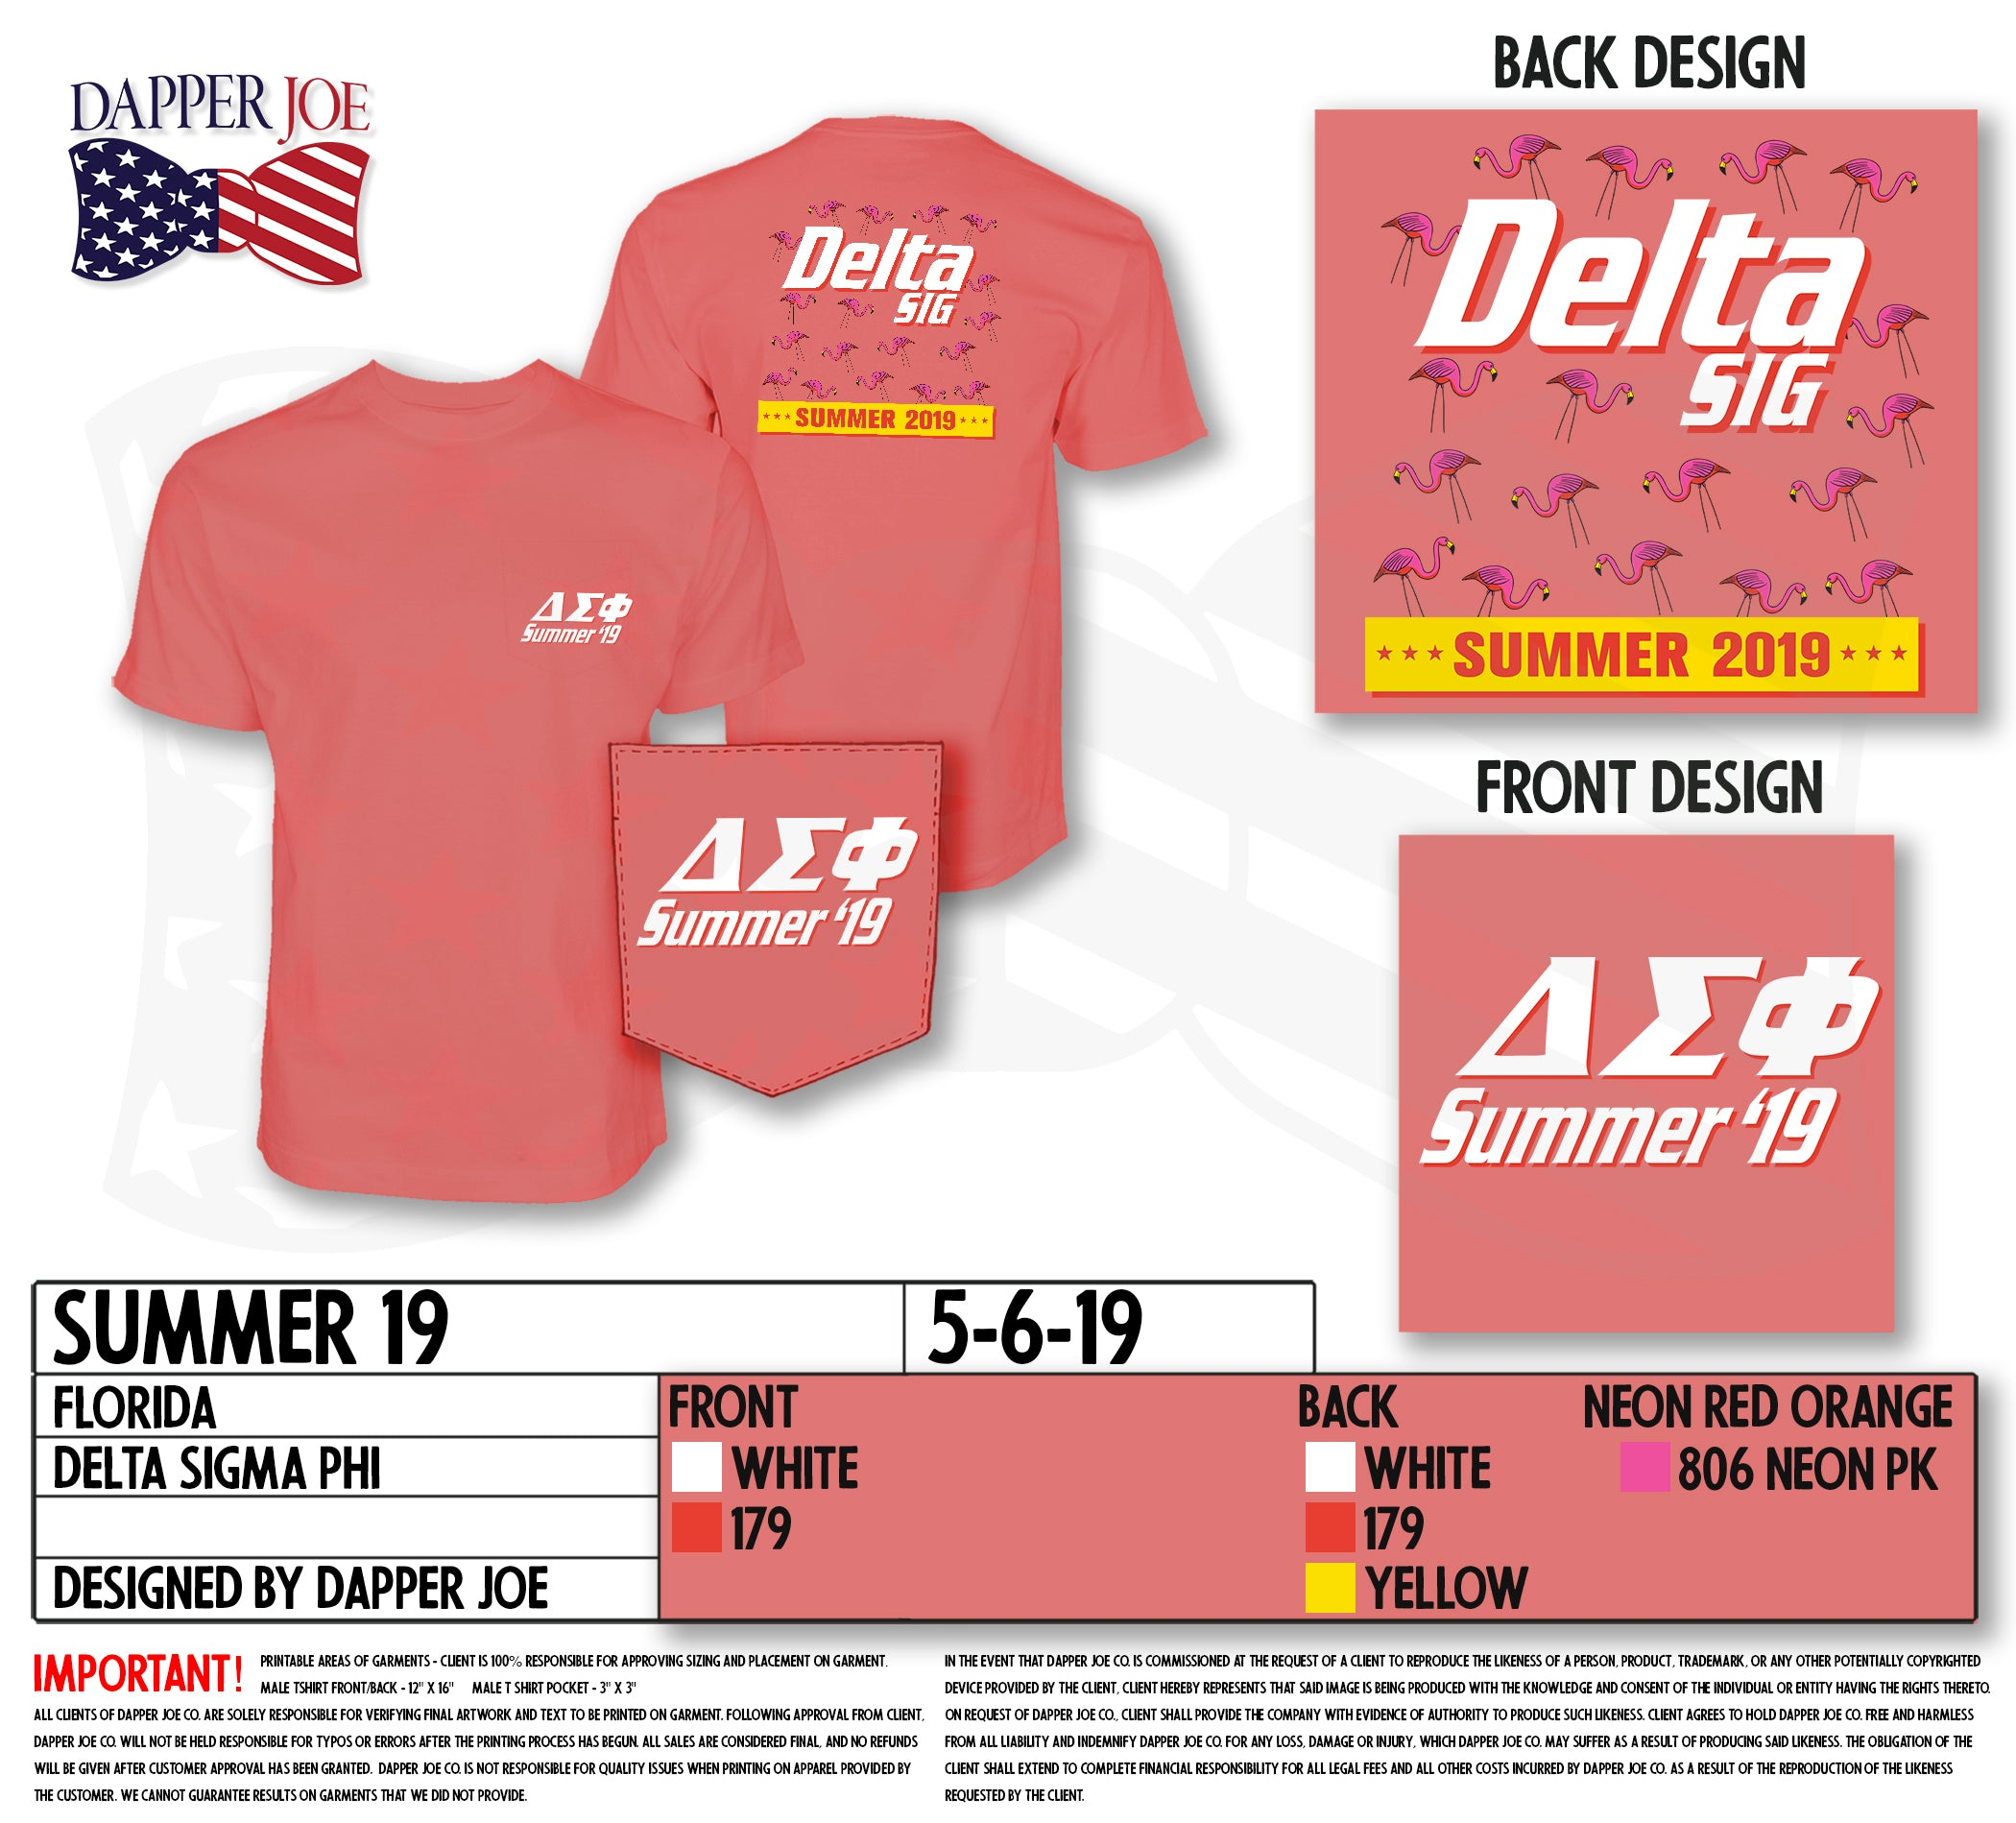 University of Florida - Delta Sigma Phi - Summer Shirt